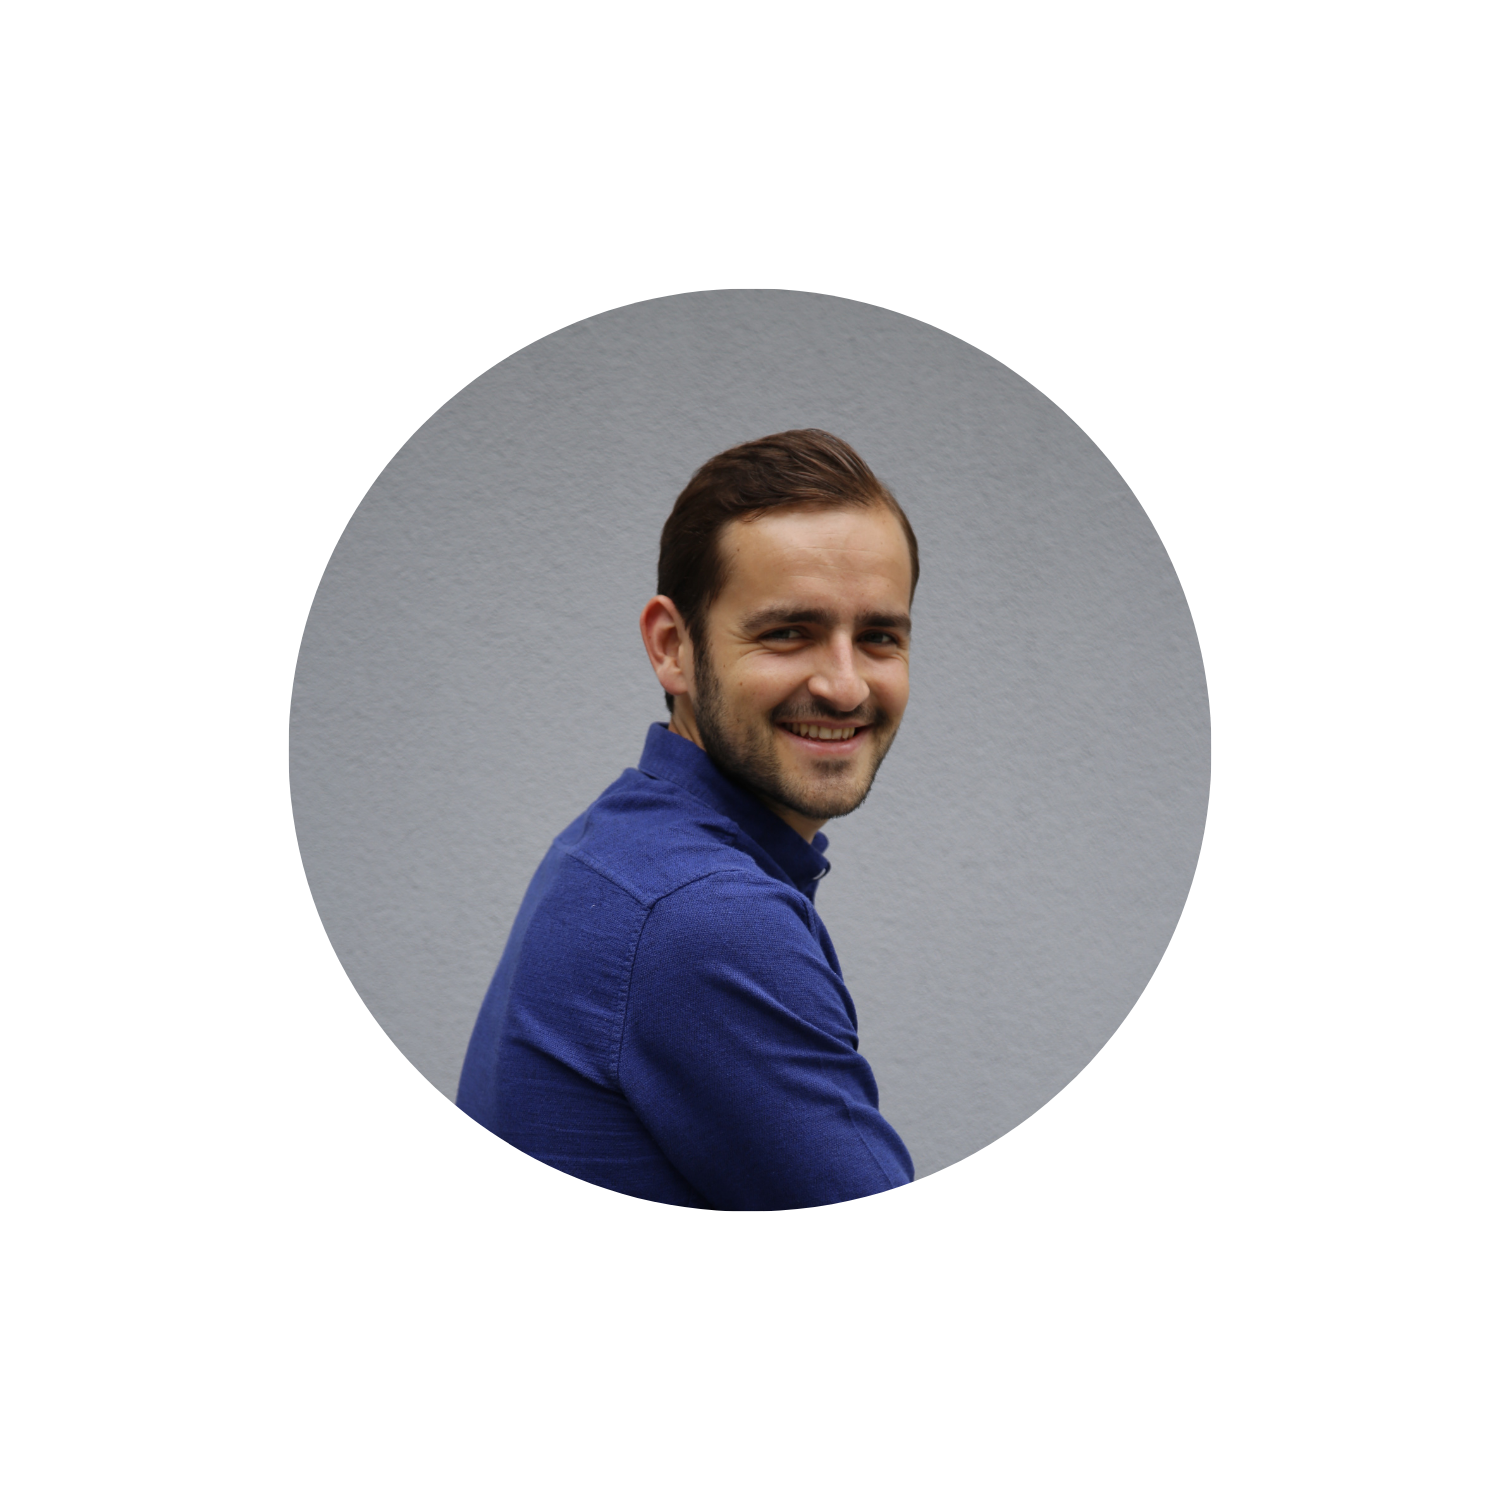 Business Manager - Gianni Aerts